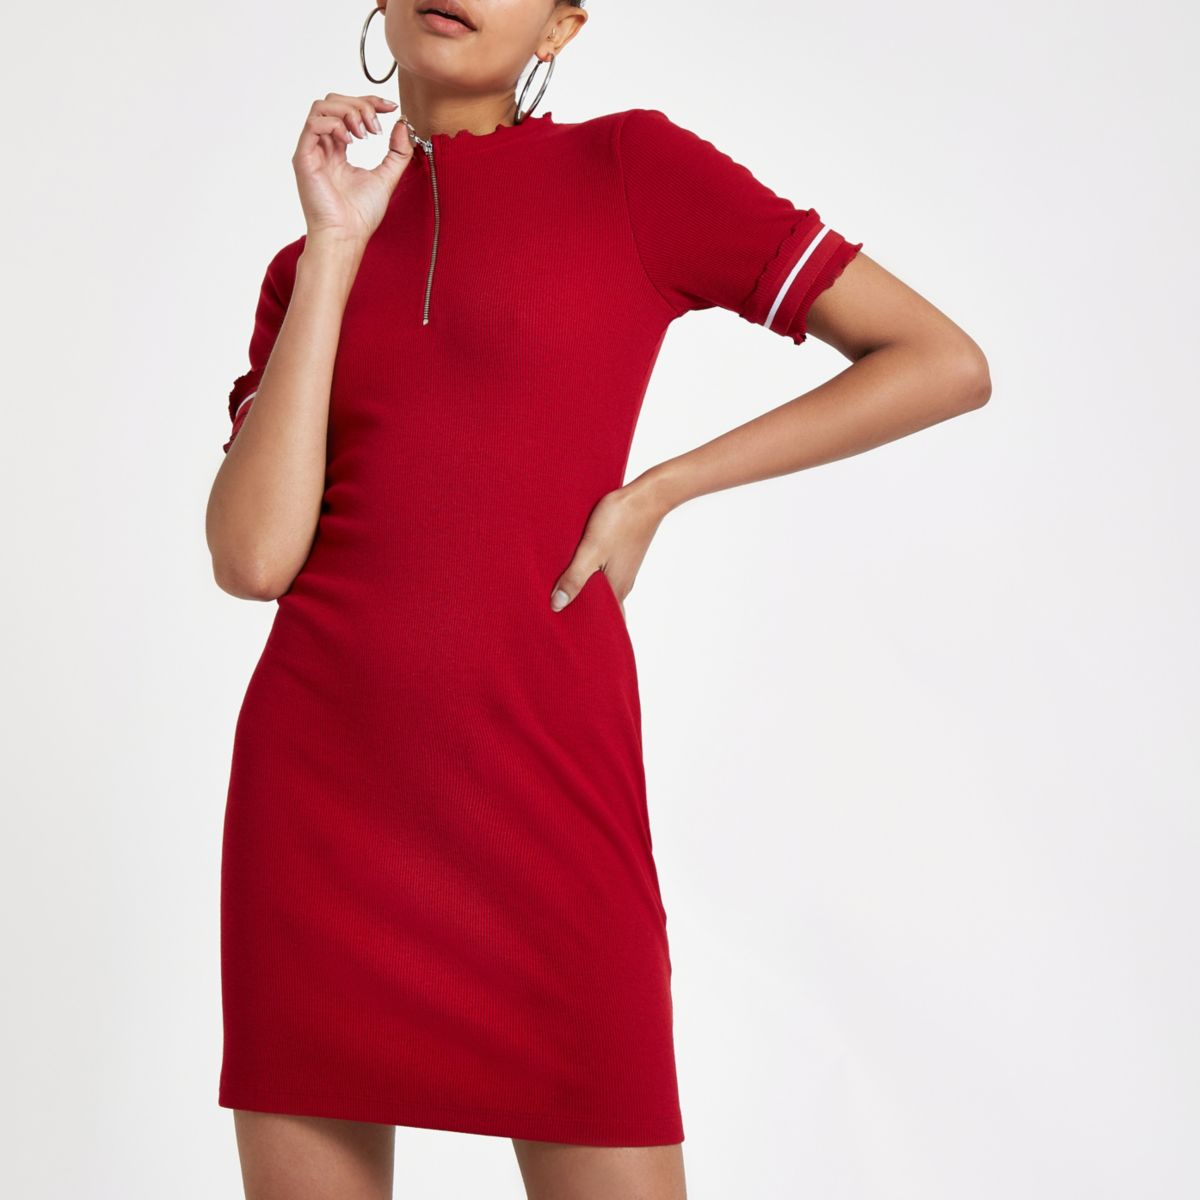 In China For Sale Outlet Low Cost River Island Womens rib zip front Bodycon mini dress Get Authentic Online From China Cheap Online t5yOl